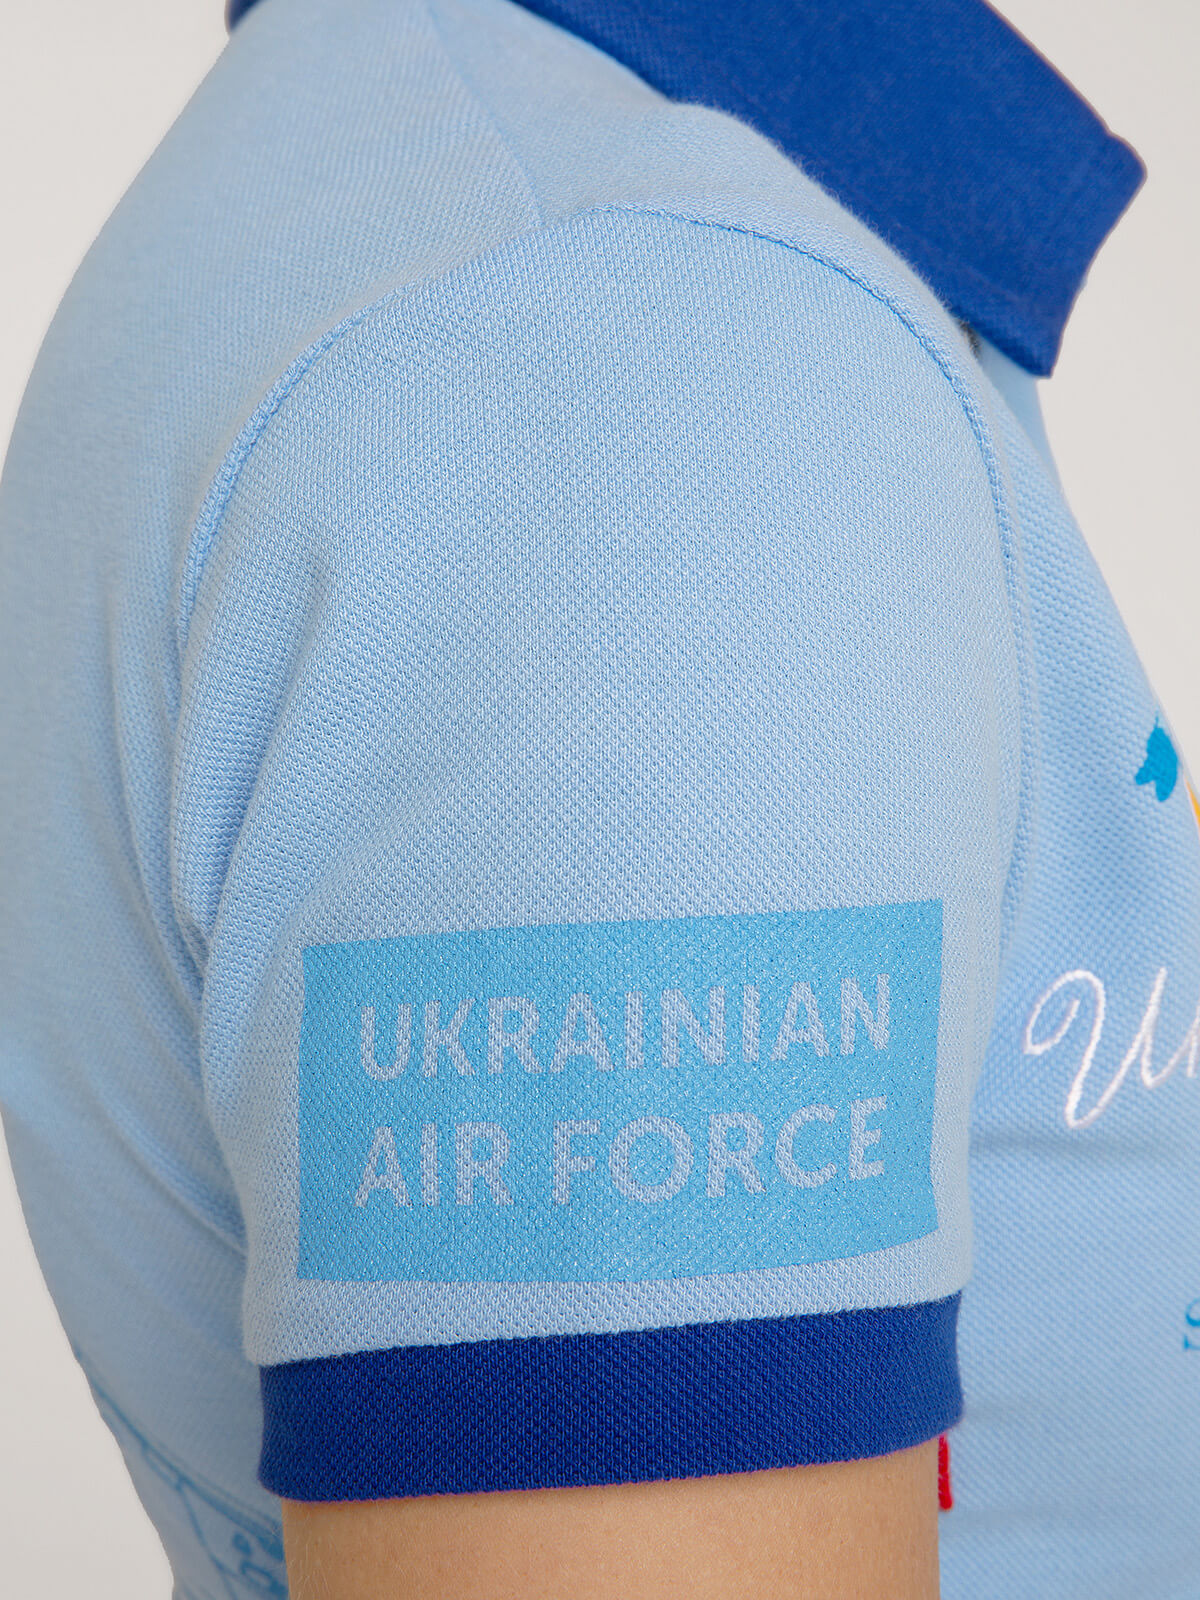 Women's Polo Shirt Ukrainian Falcons. Color sky blue.  Size worn by the model: S.